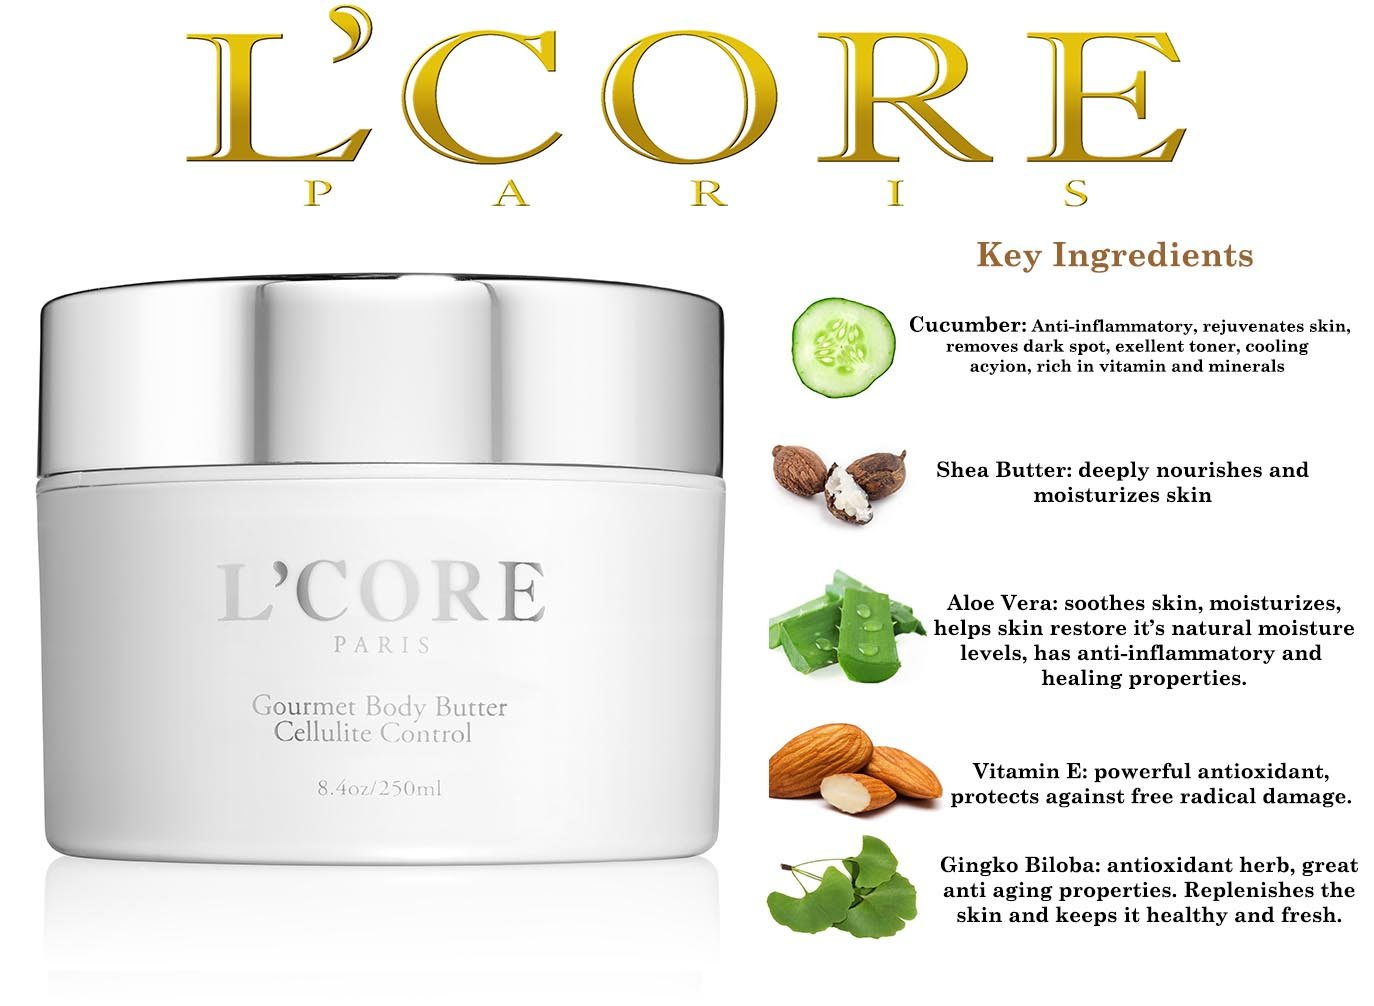 L'Core Paris Gourmet Cellulite Control Body Butter - Reduces Cellulite, Stretch Marks, Replenishes and Moisturizes Your Skin - 8.4oz/250ml